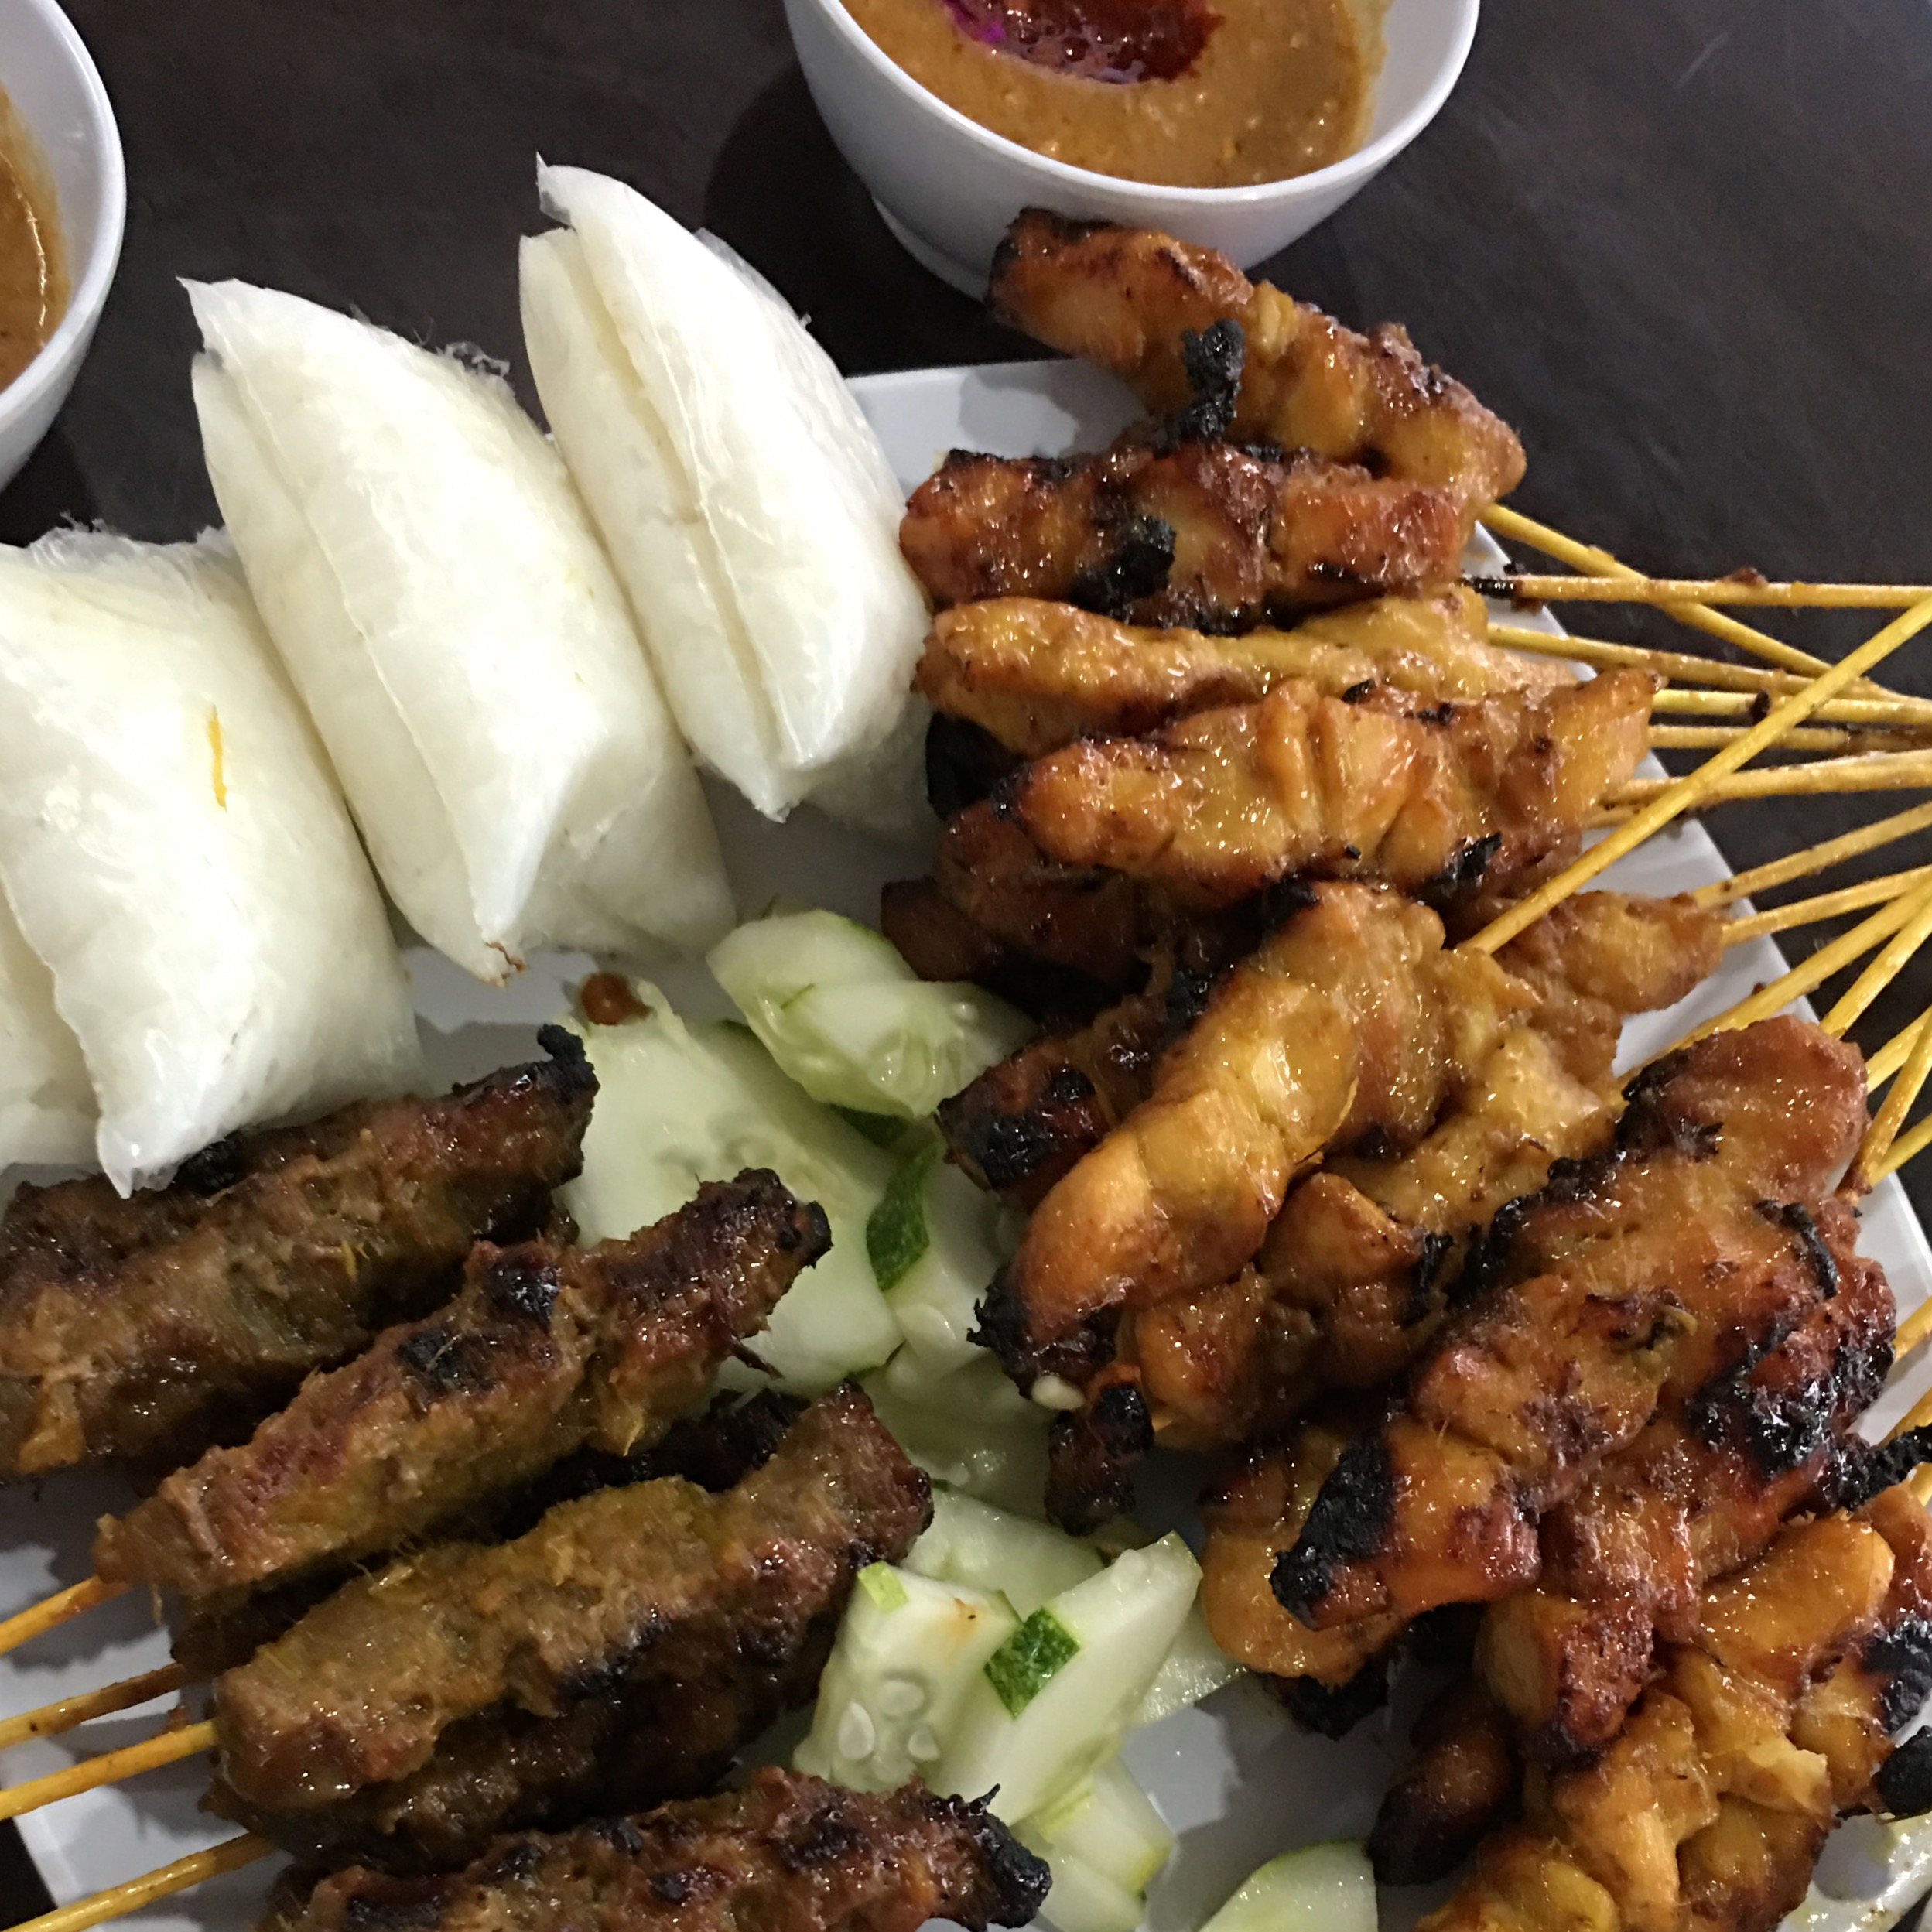 Recent satay recommendation by a friend